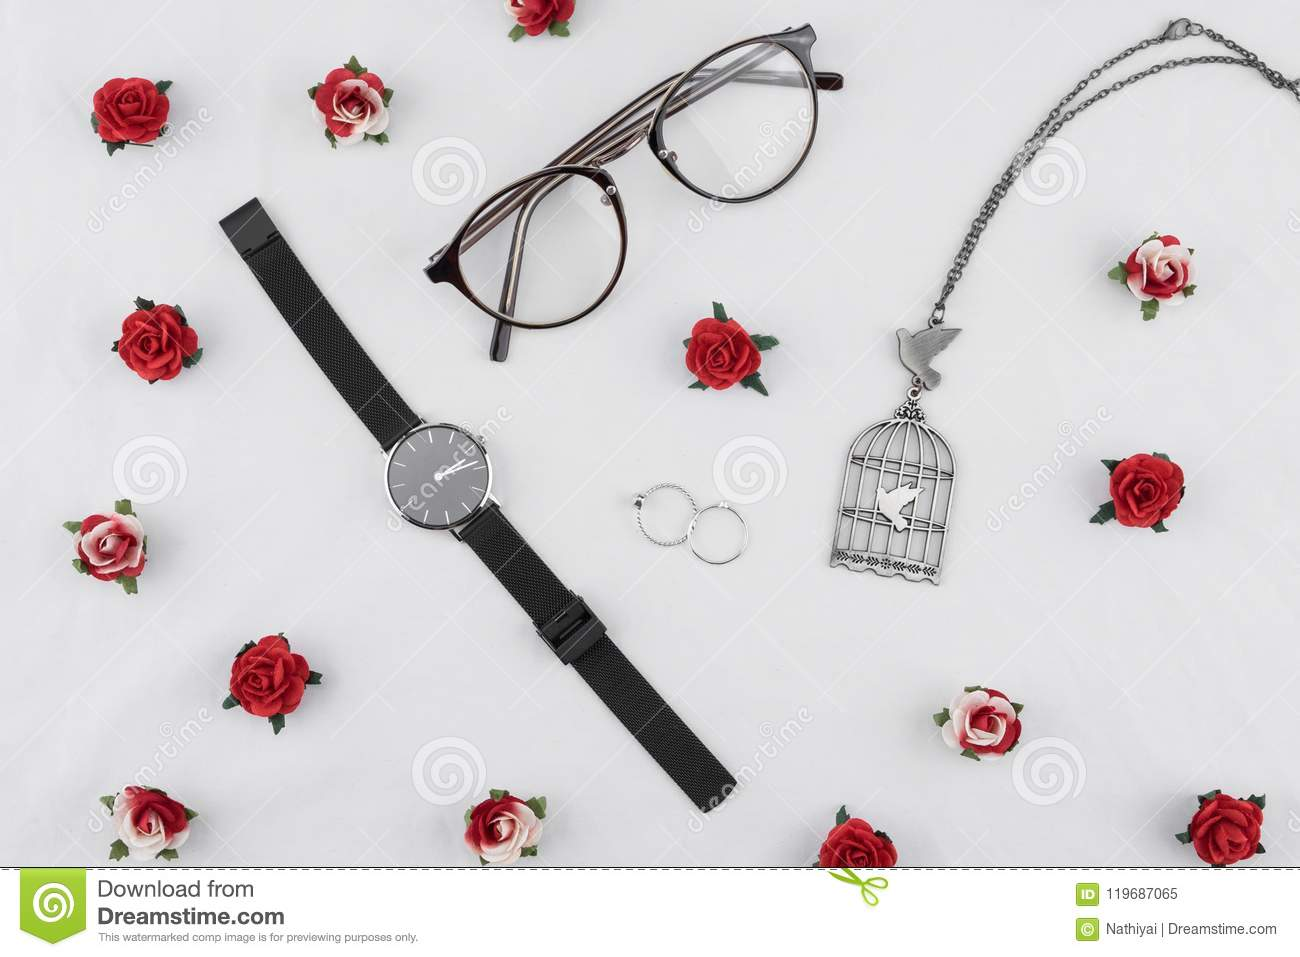 Eyeglasses, black watches, necklace and rings